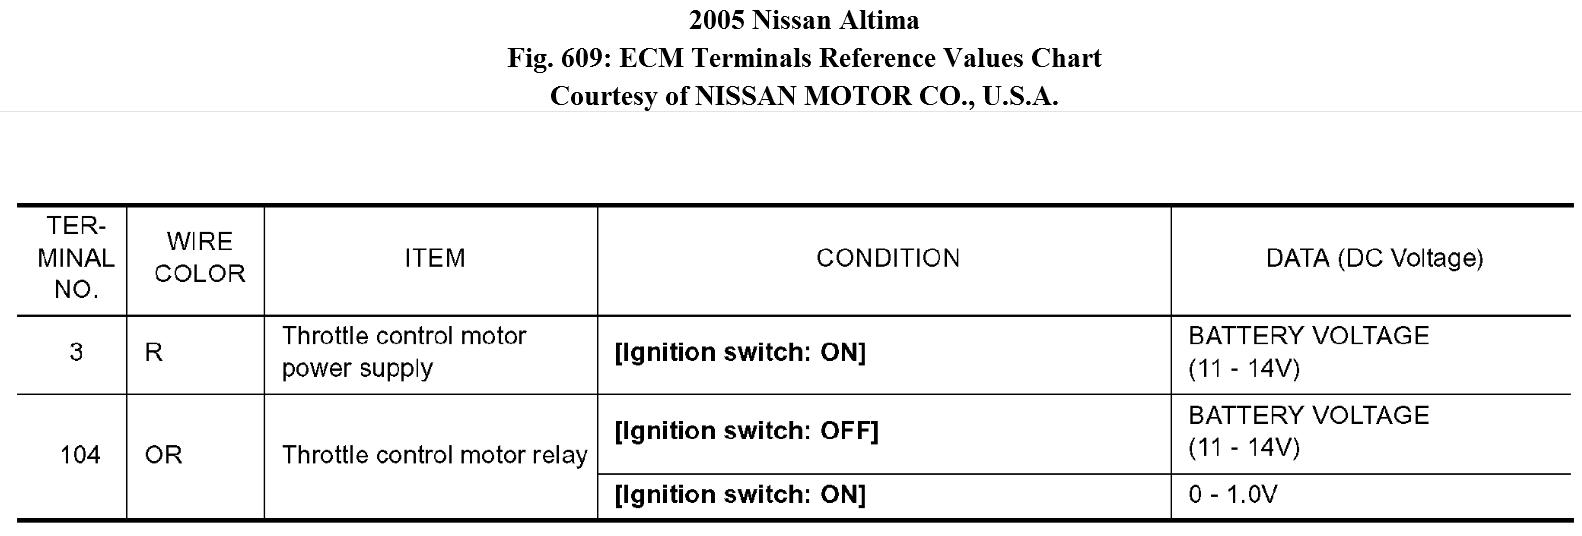 Limp Mode My Atlima Wont Rev Up Or Accelerate Regardless Of What. Nissan. 2005 Nissan Altima Throttle Wiring At Scoala.co